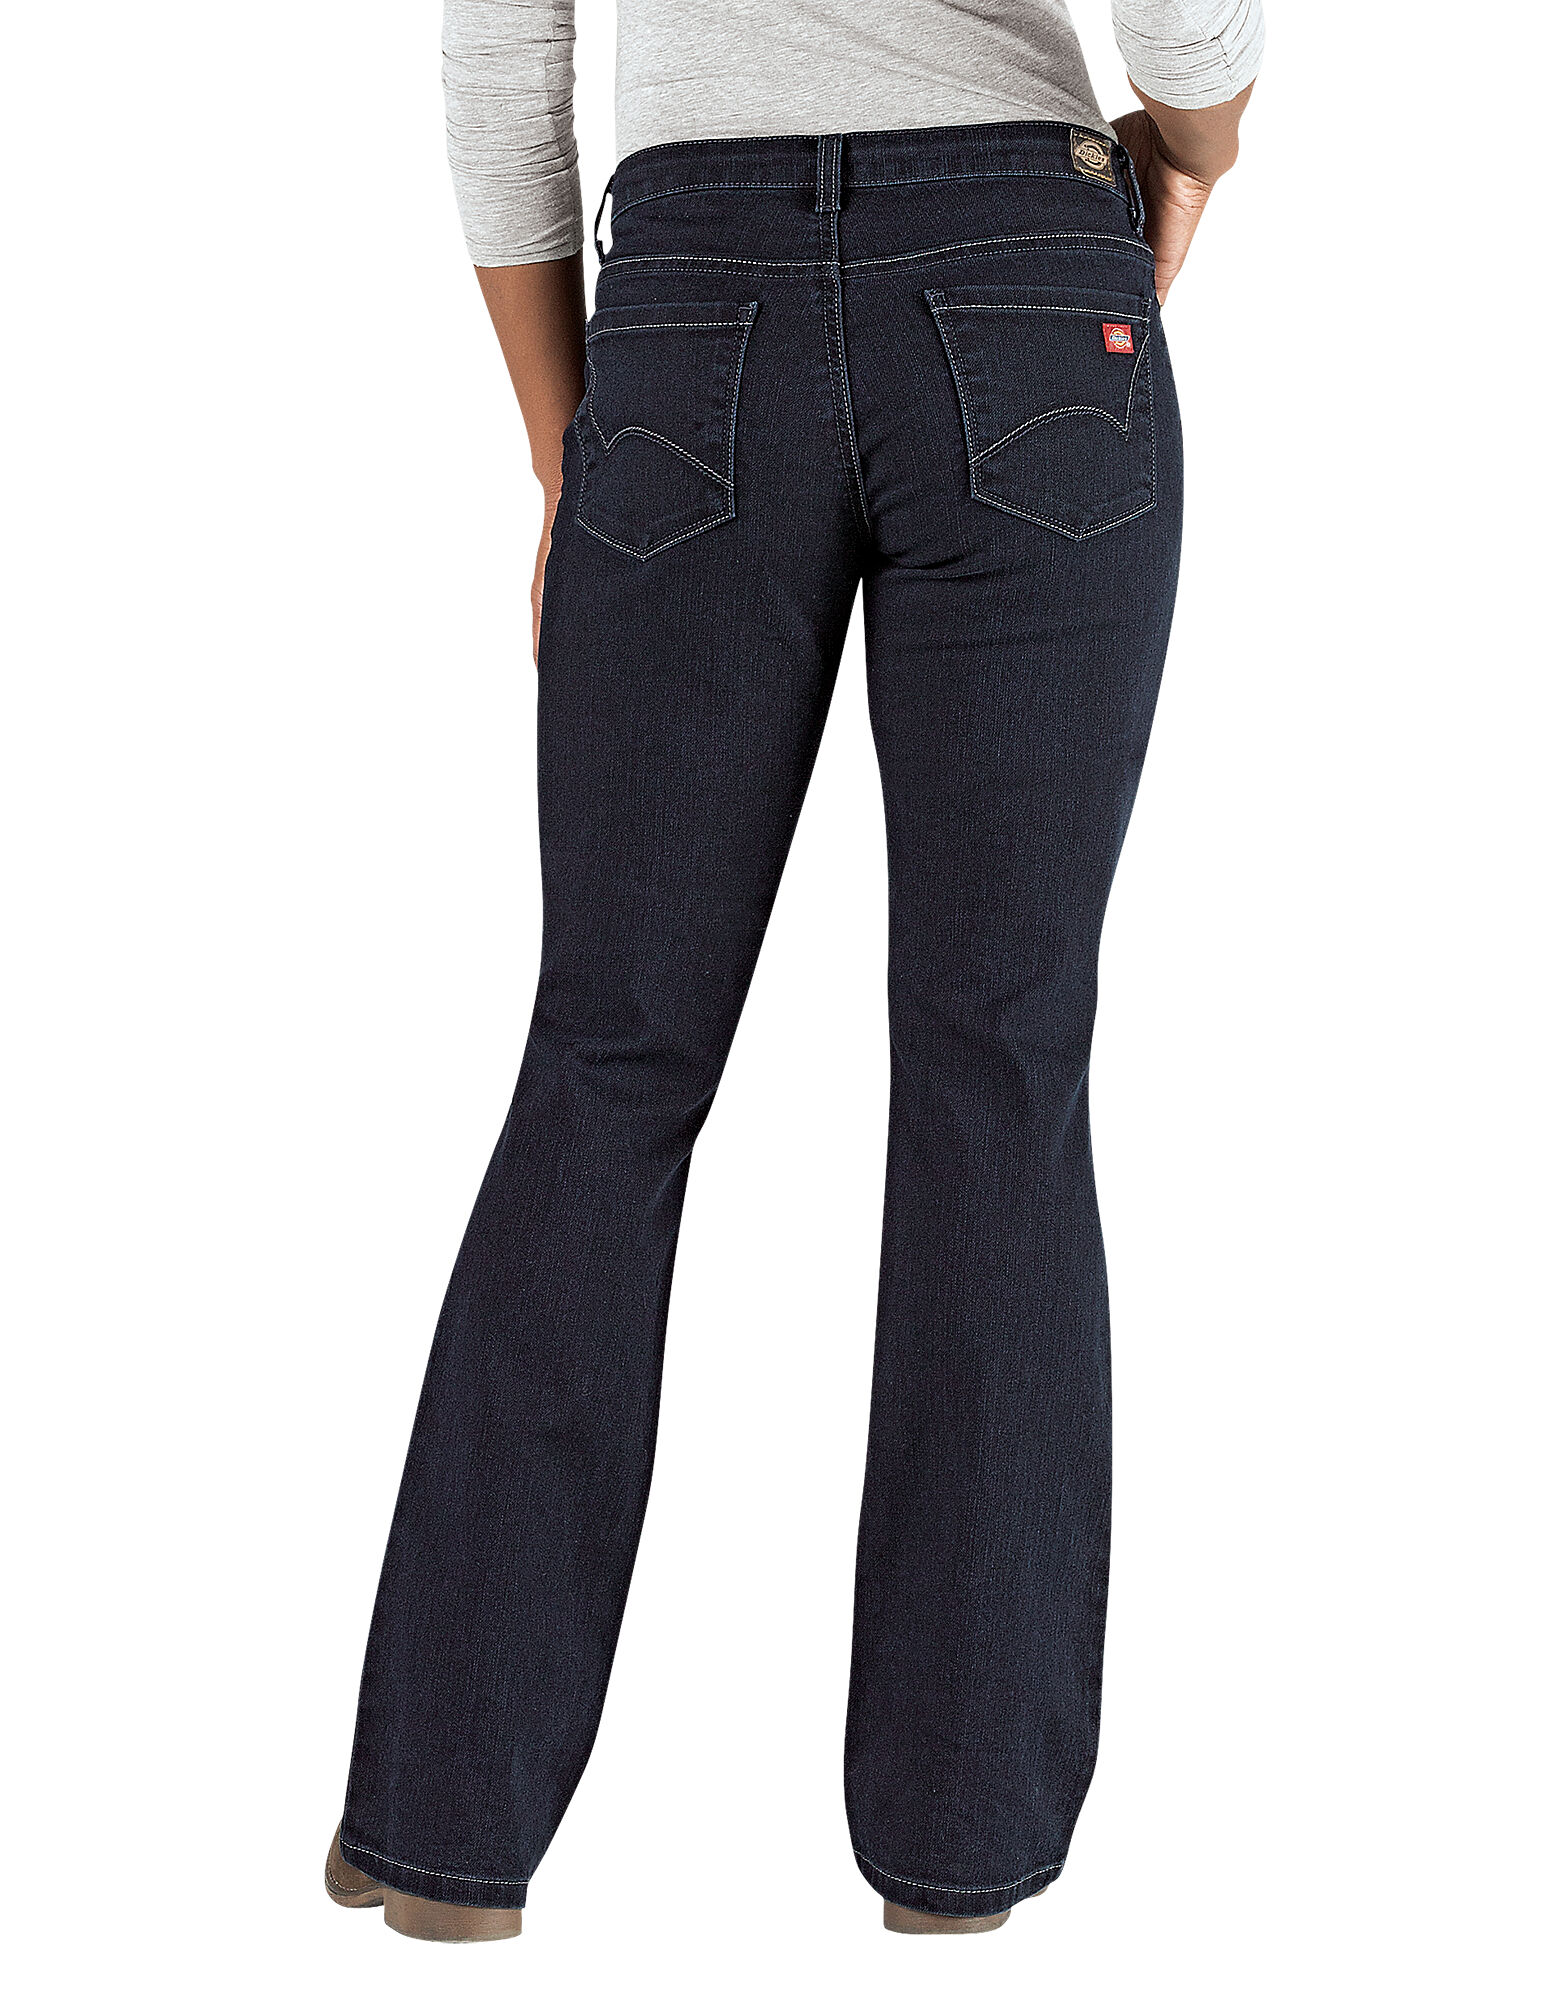 097a0569db7 ... Women's Curvy Fit Boot Cut Leg Denim Jean - Stonewashed Dark Blue